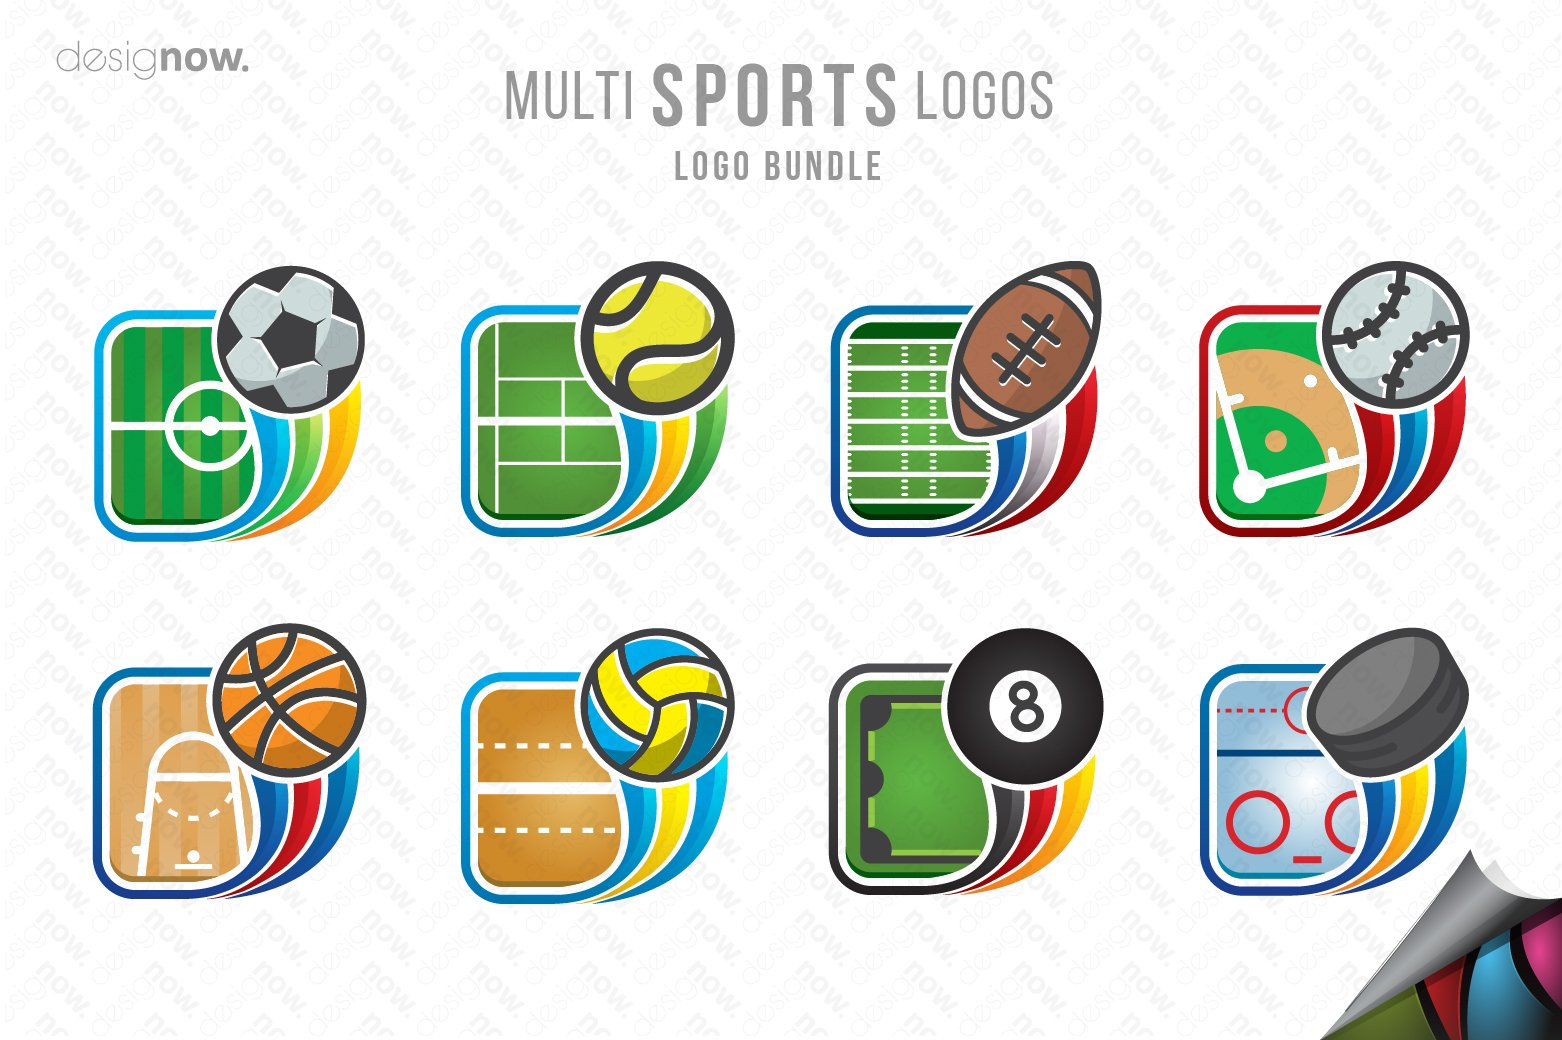 sports logos multi templates creative global fastly